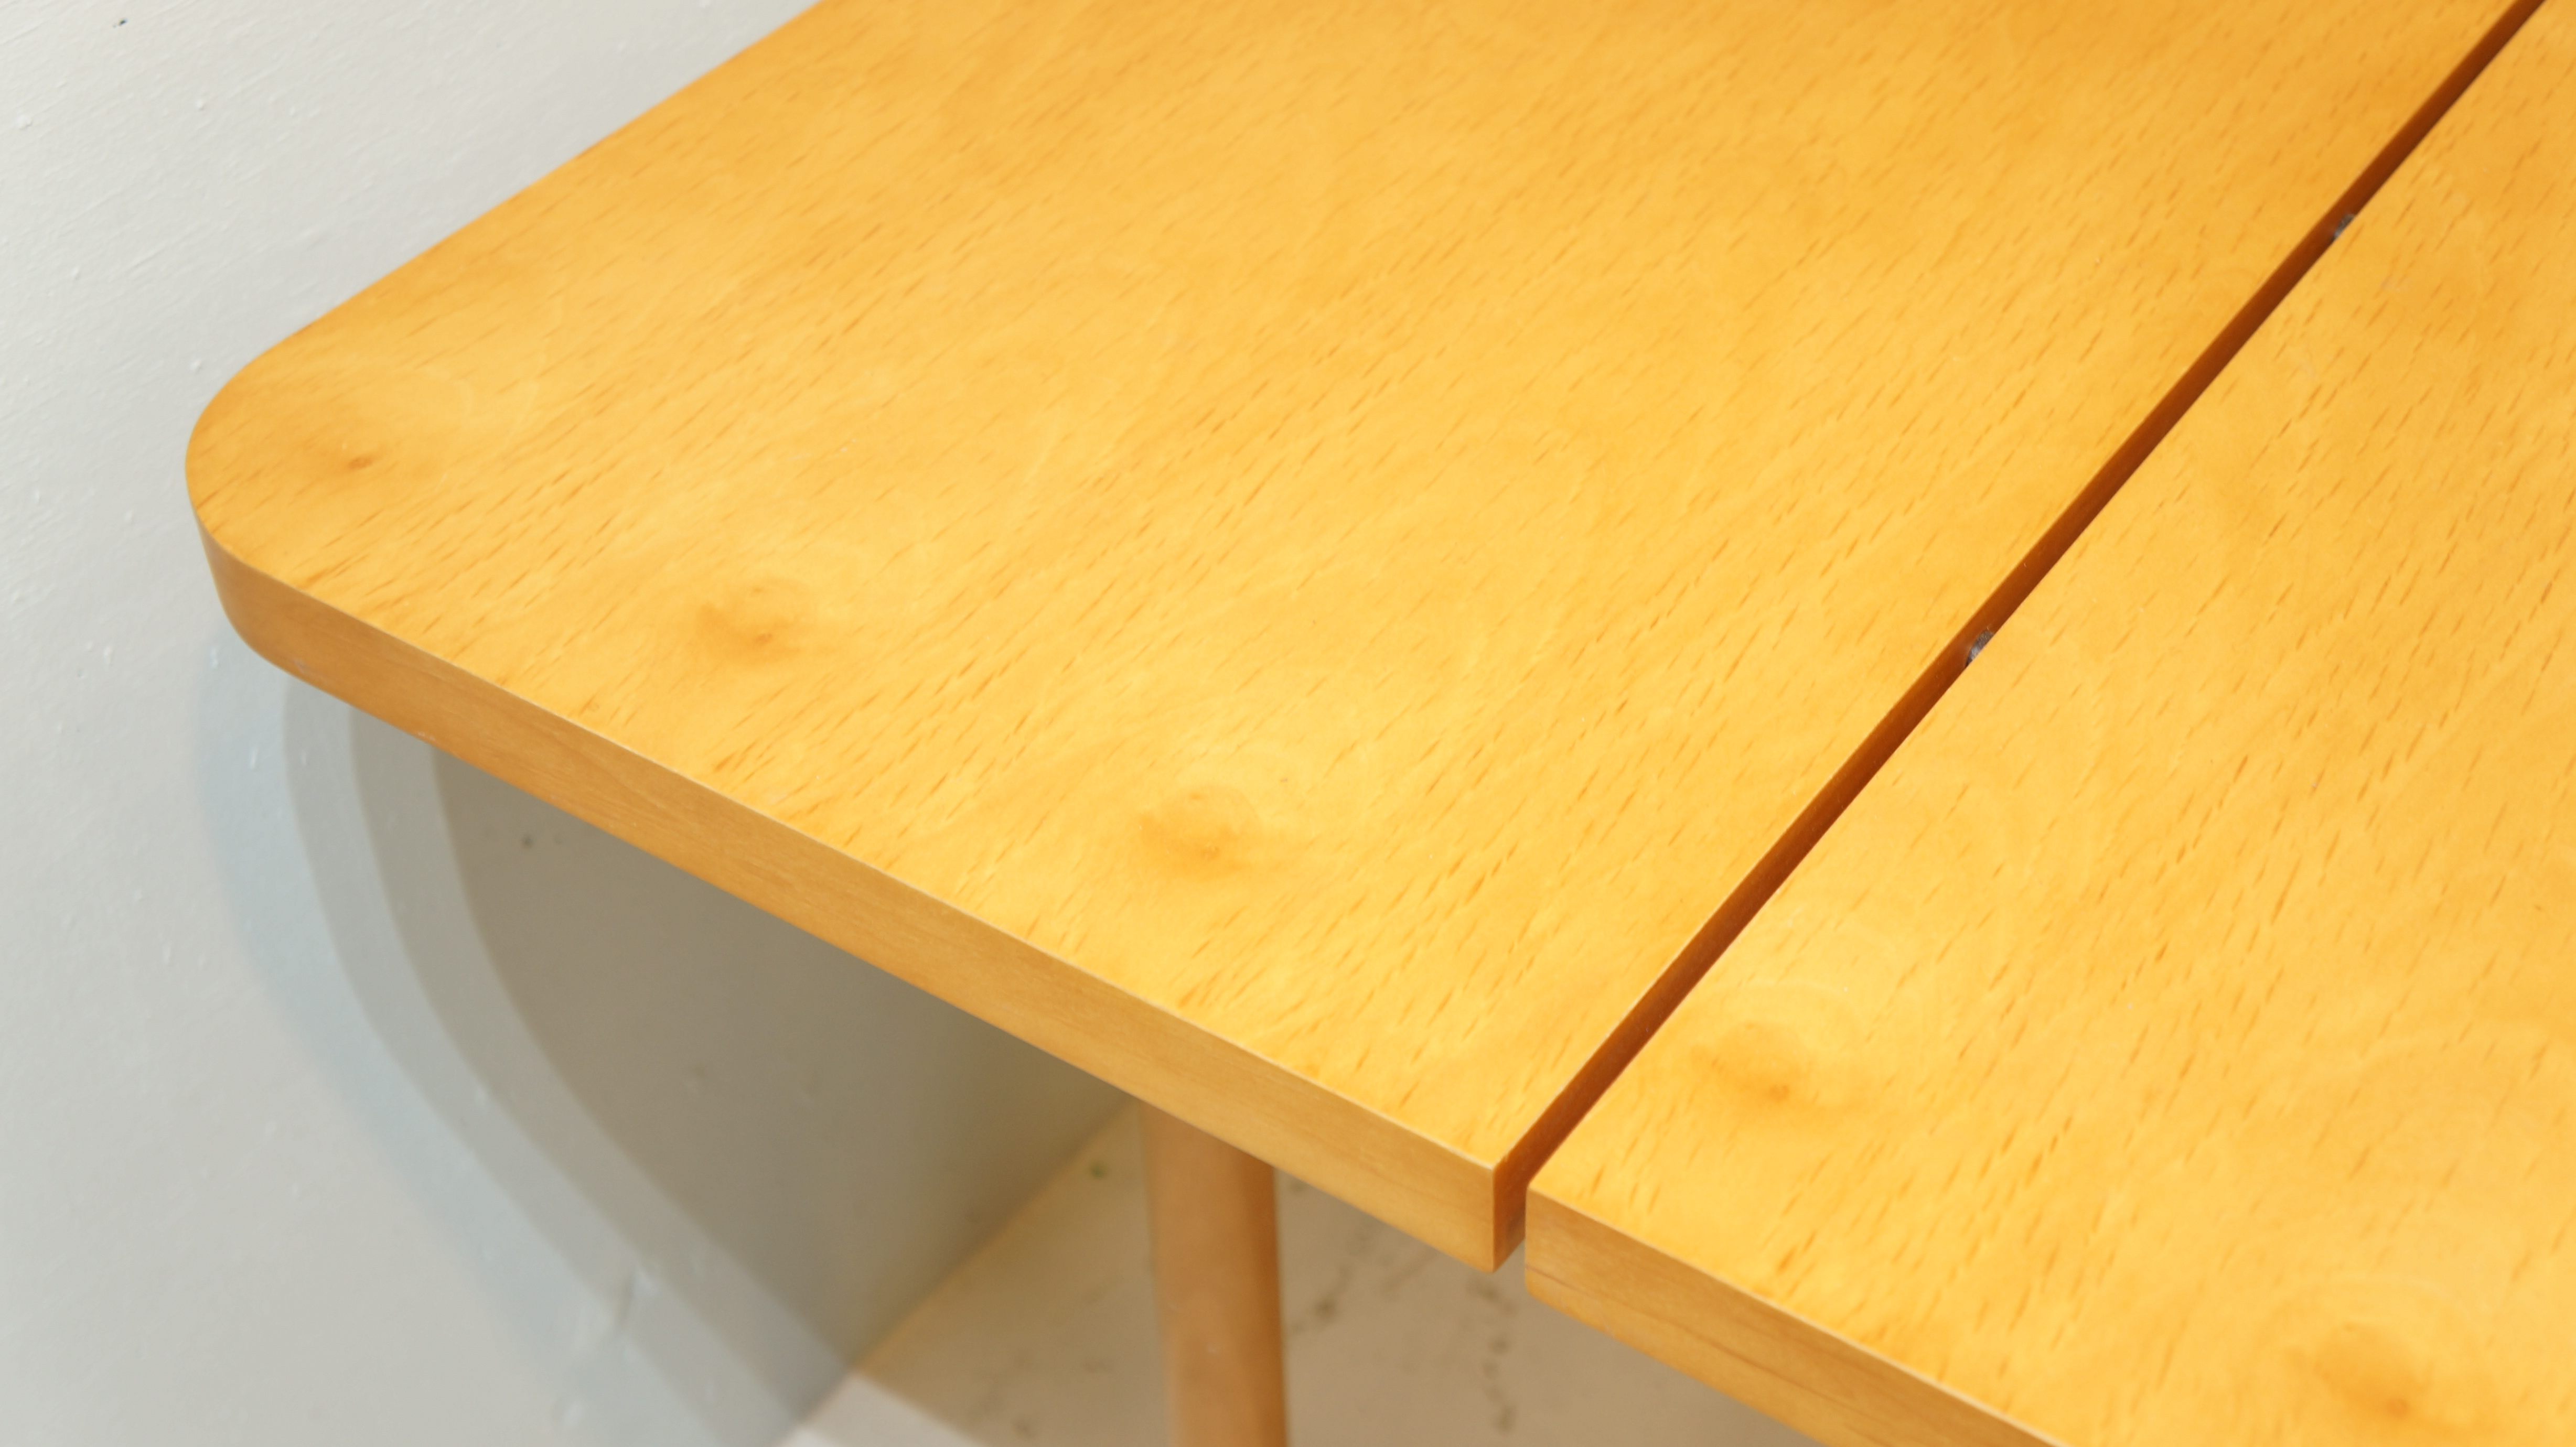 UNICO DINING TABLE WYTHE series AMERICAN CAFE STYLE / ウニコ ワイズシリーズ ダイニングテーブル アメリカン カフェ スタイル